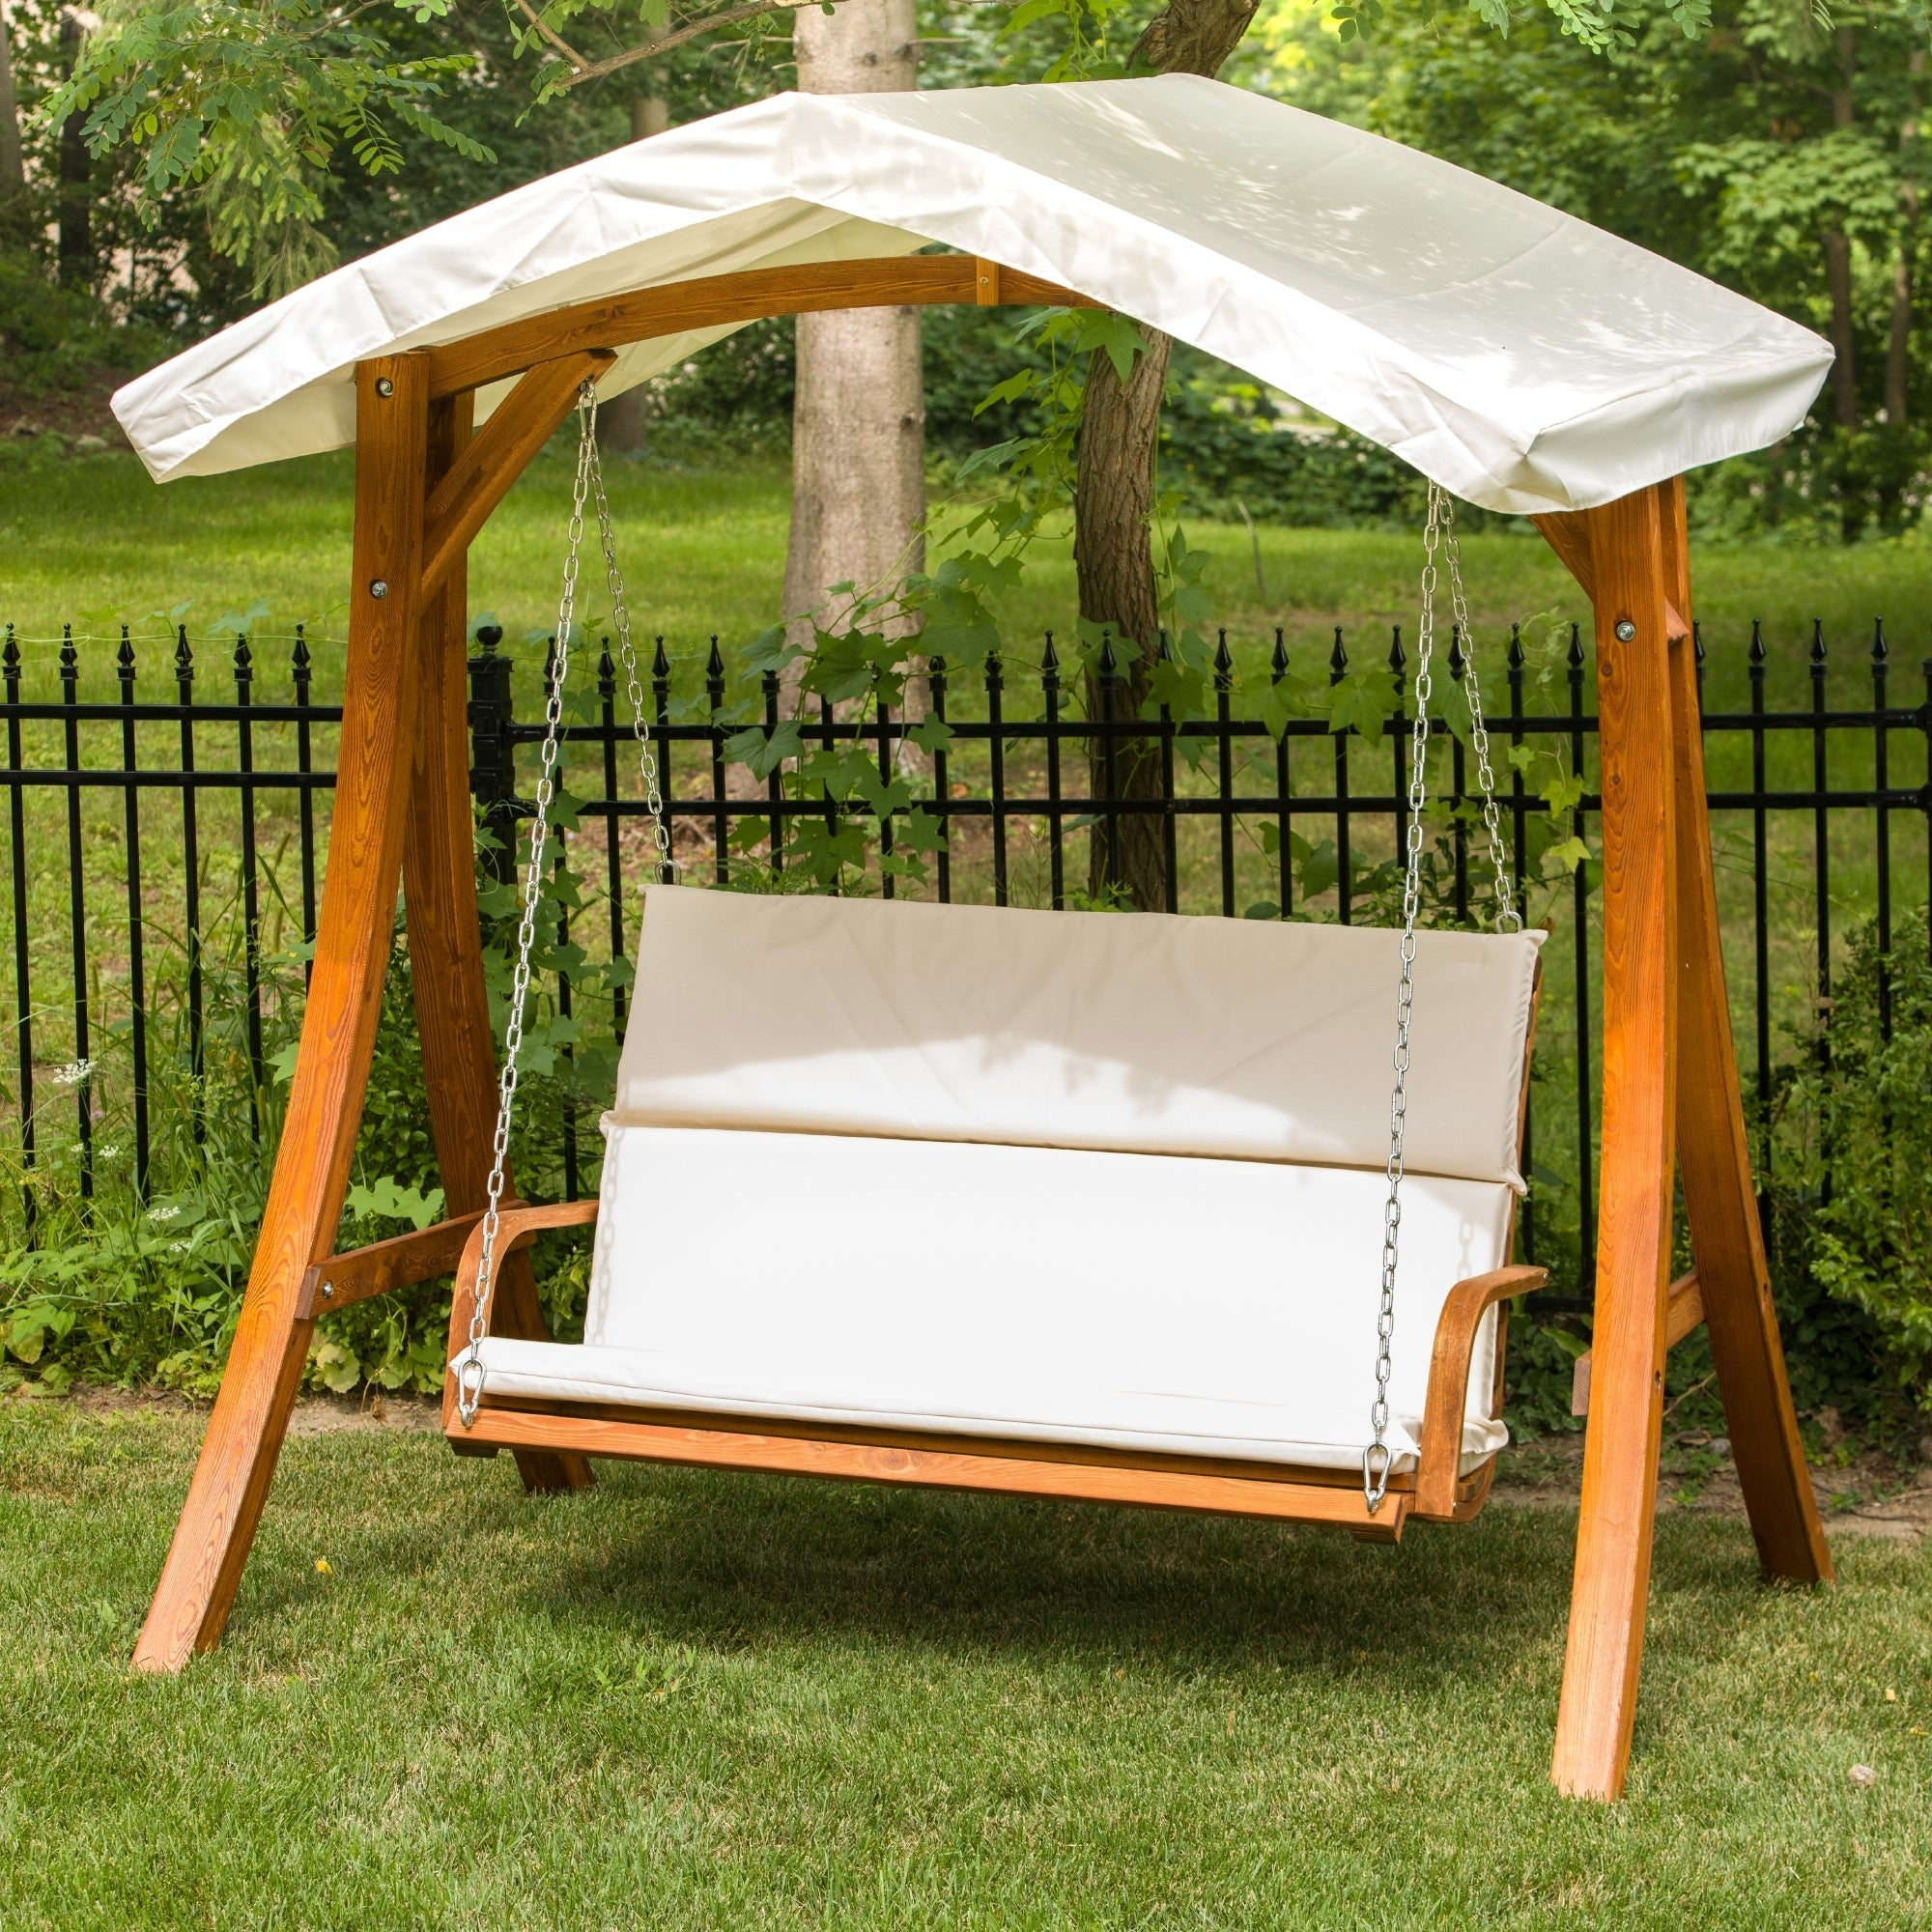 Home & Garden Store Hammocks, Swing Chairs & Accessories With Regard To 3 Seater Swings With Frame And Canopy (Image 15 of 25)